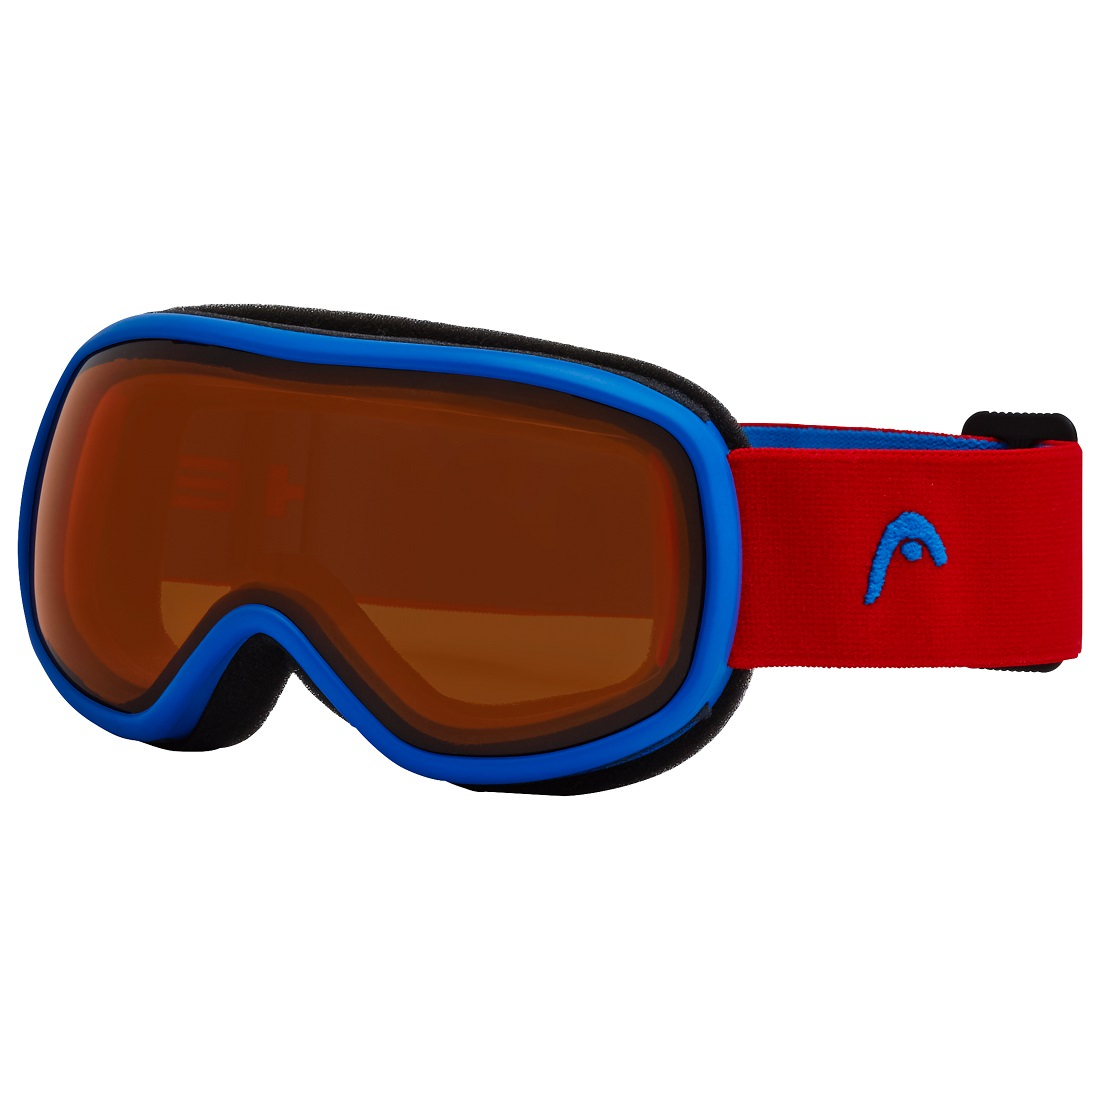 Очки горнолыжные HEAD NINJA JUNIOR lens orange/red